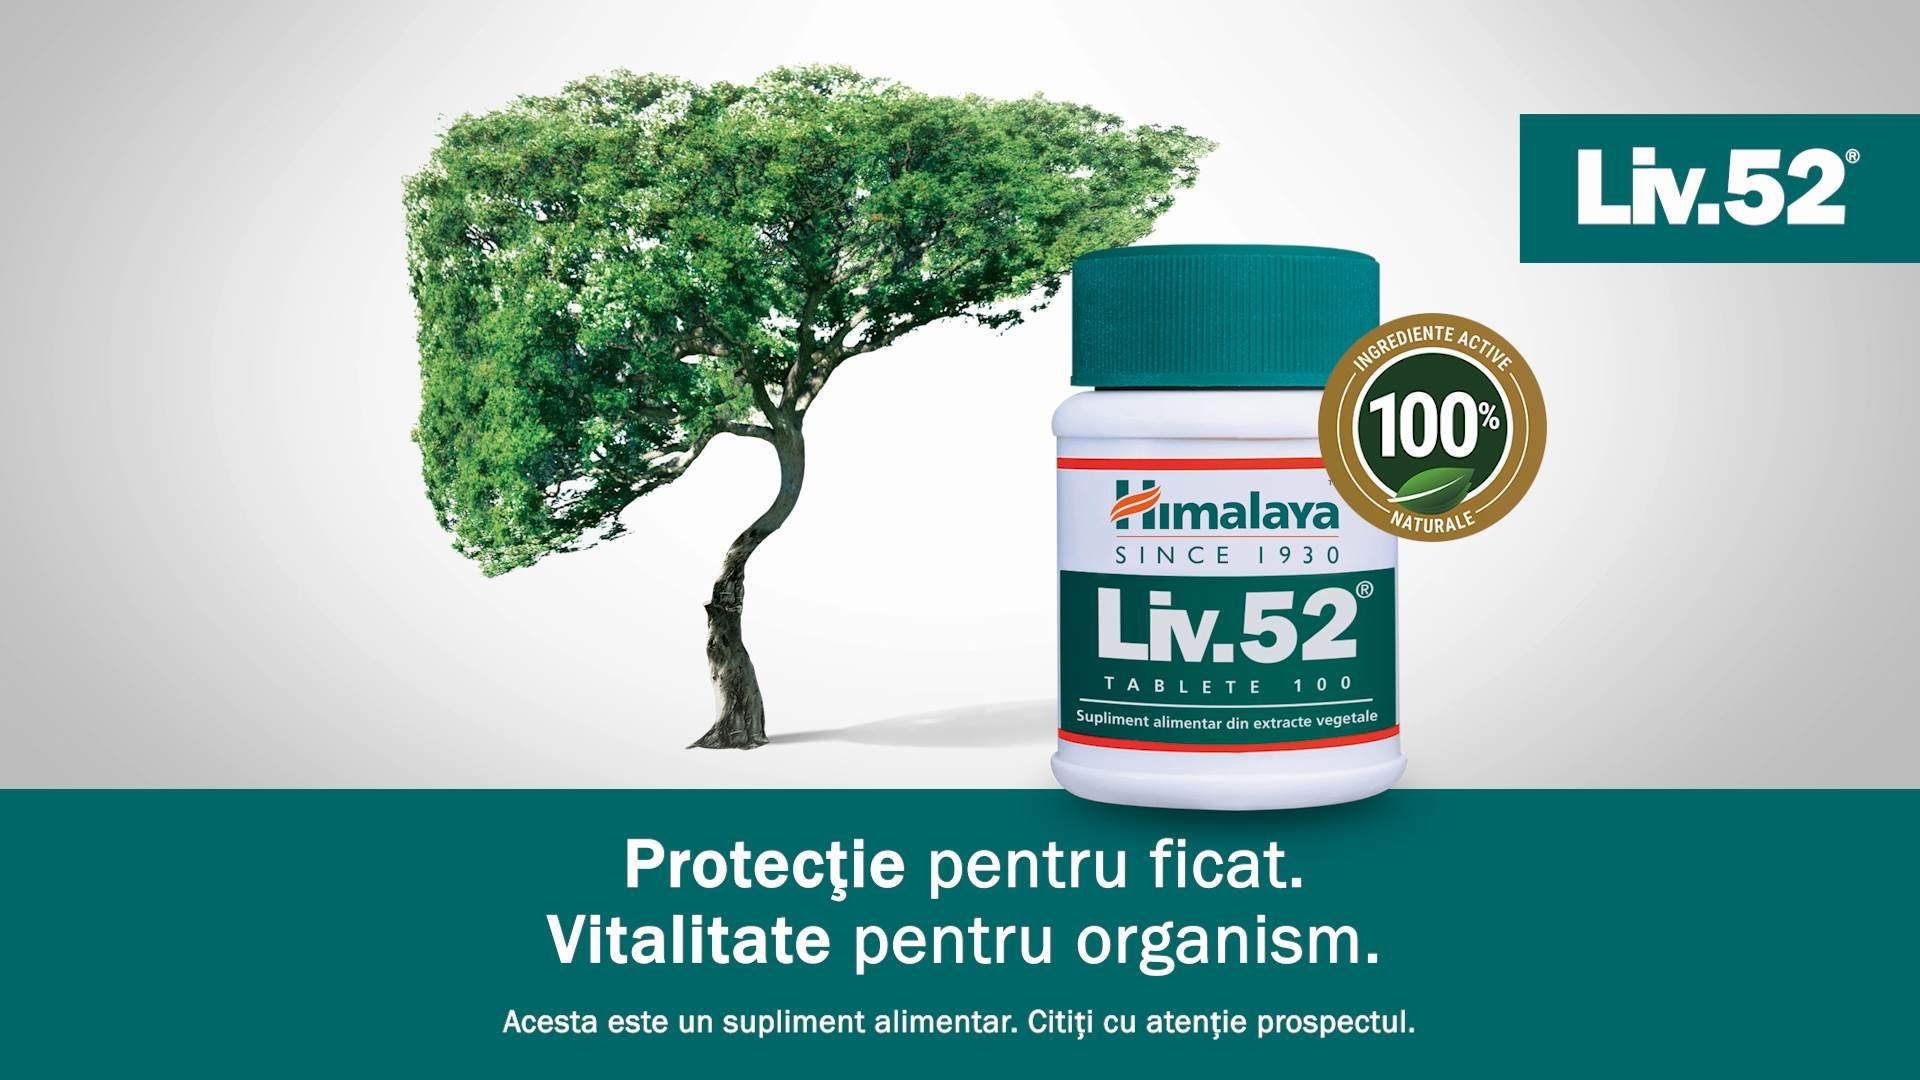 Liv.52 is a herbal product for the liver and gallbladder.